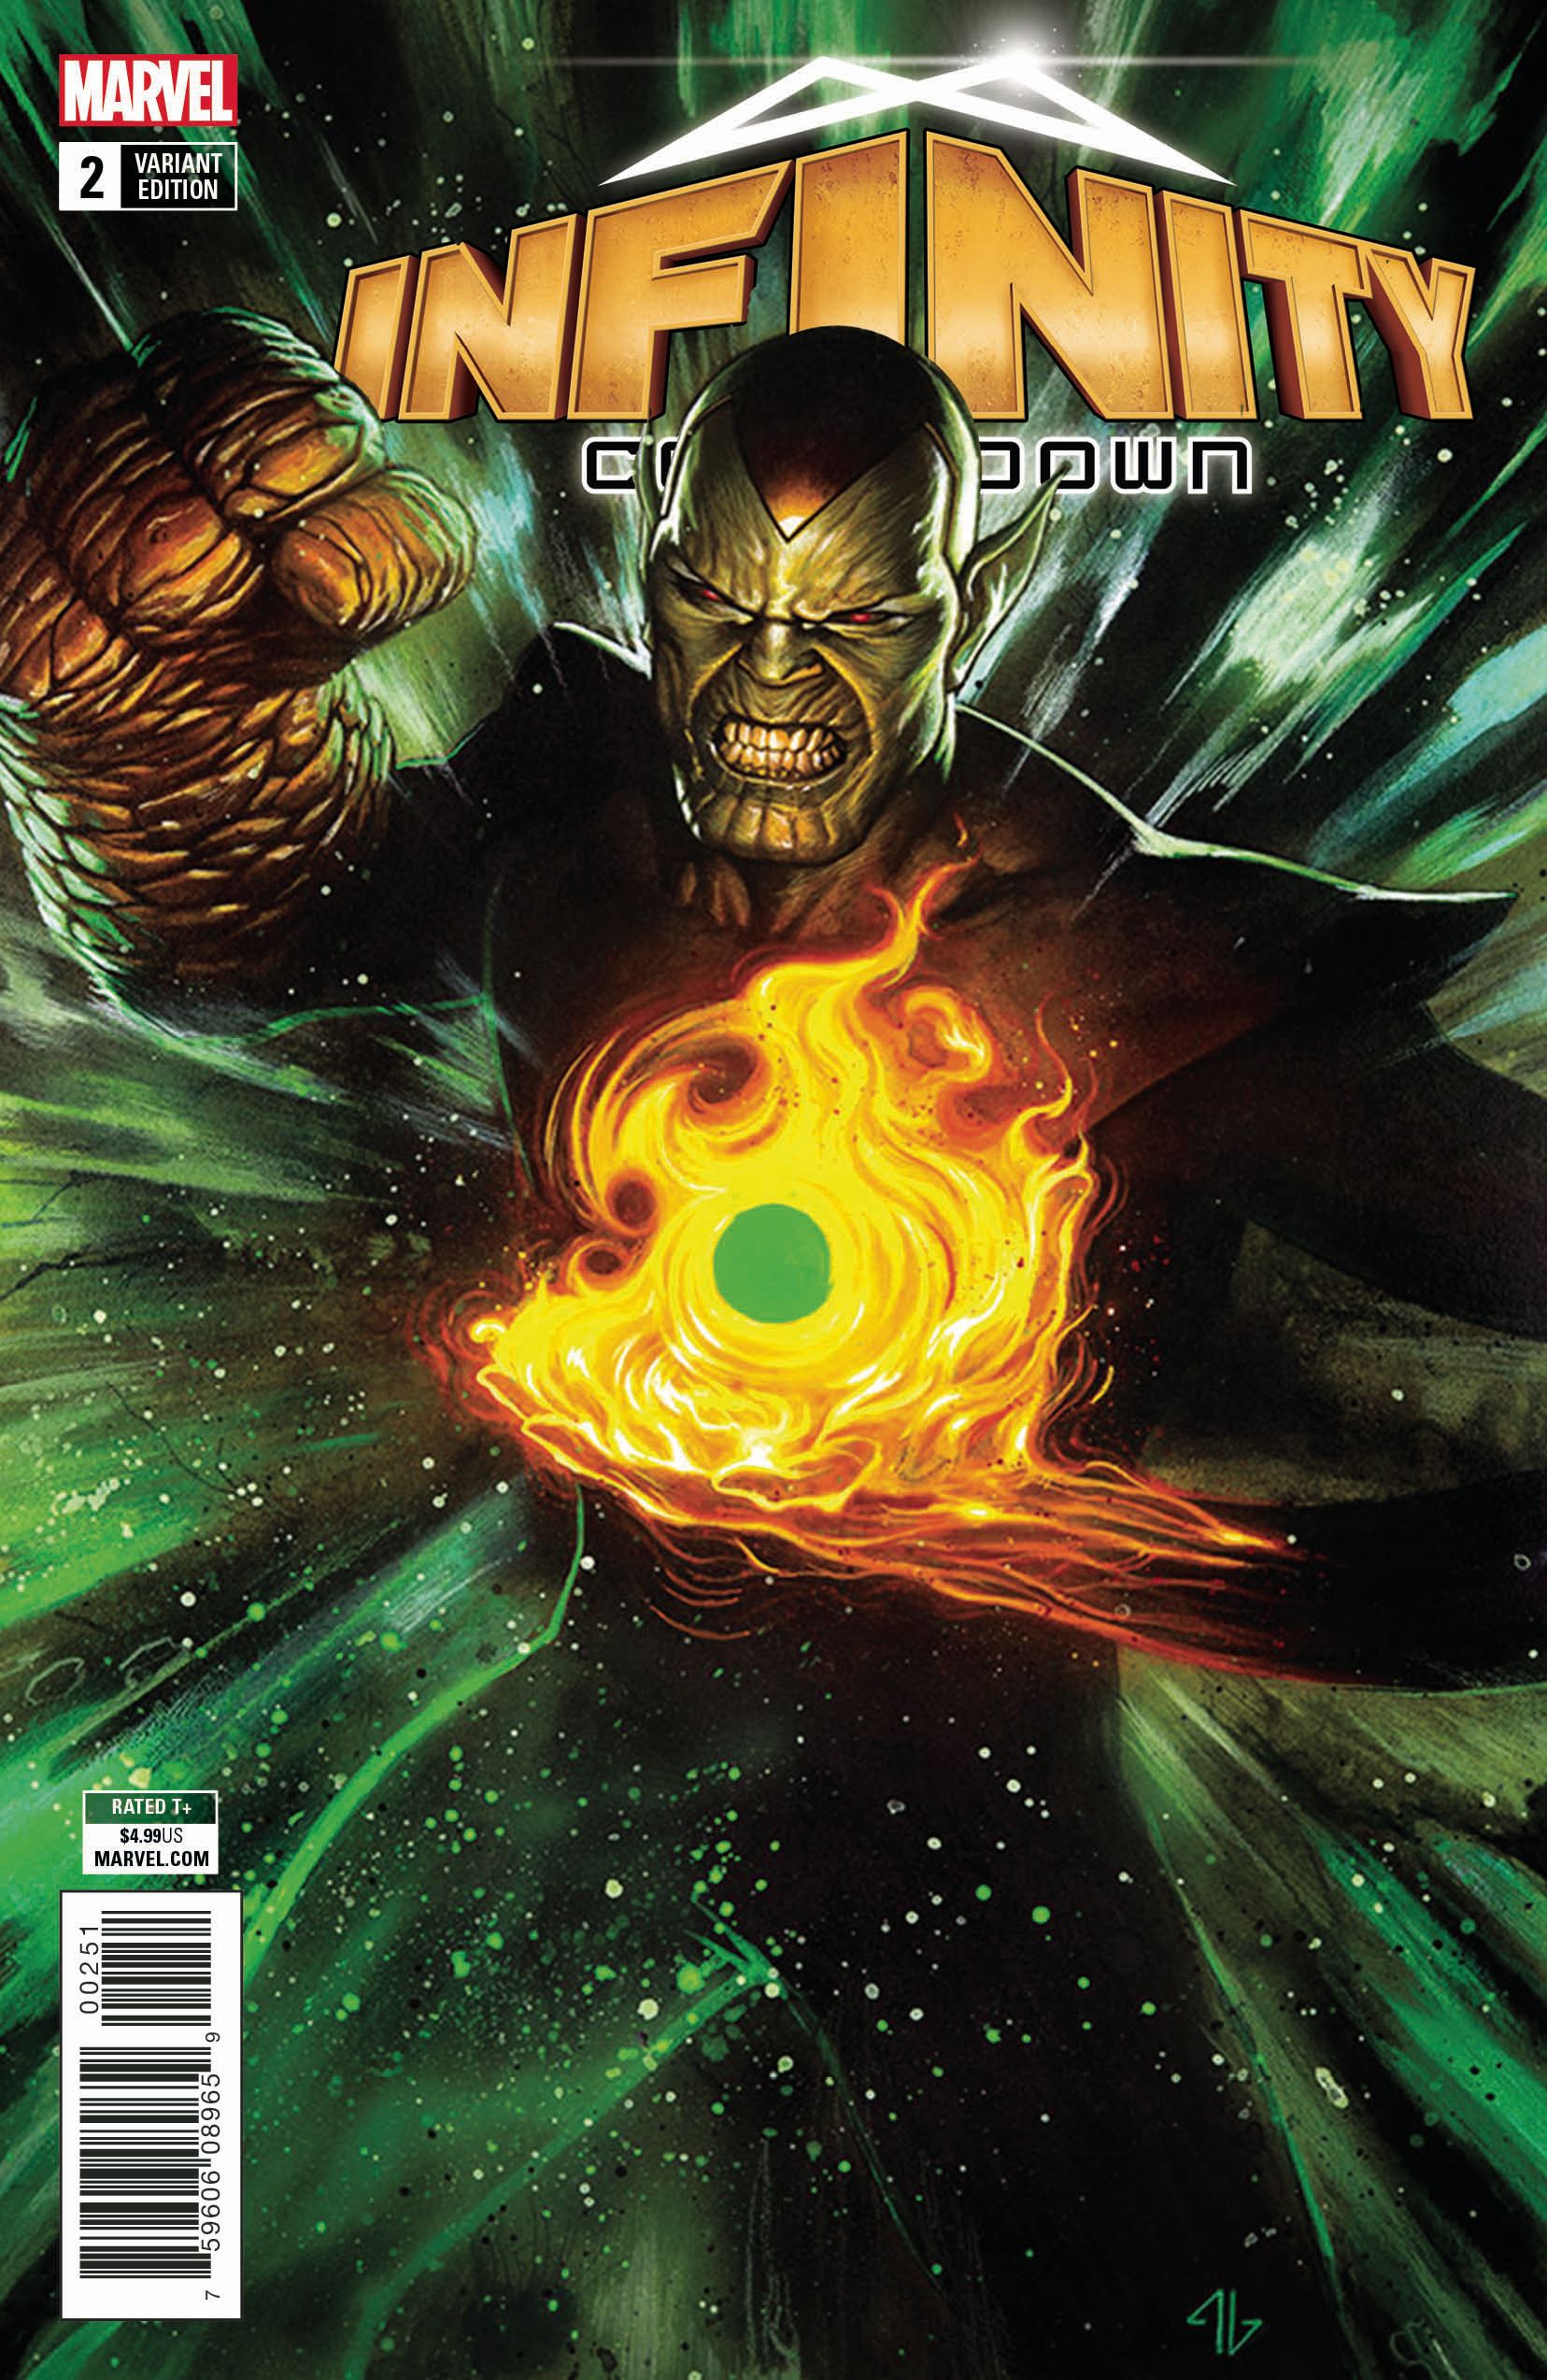 INFINITY COUNTDOWN #2 (OF 5) SUPER SKRULL HOLDS INFINITY VAR